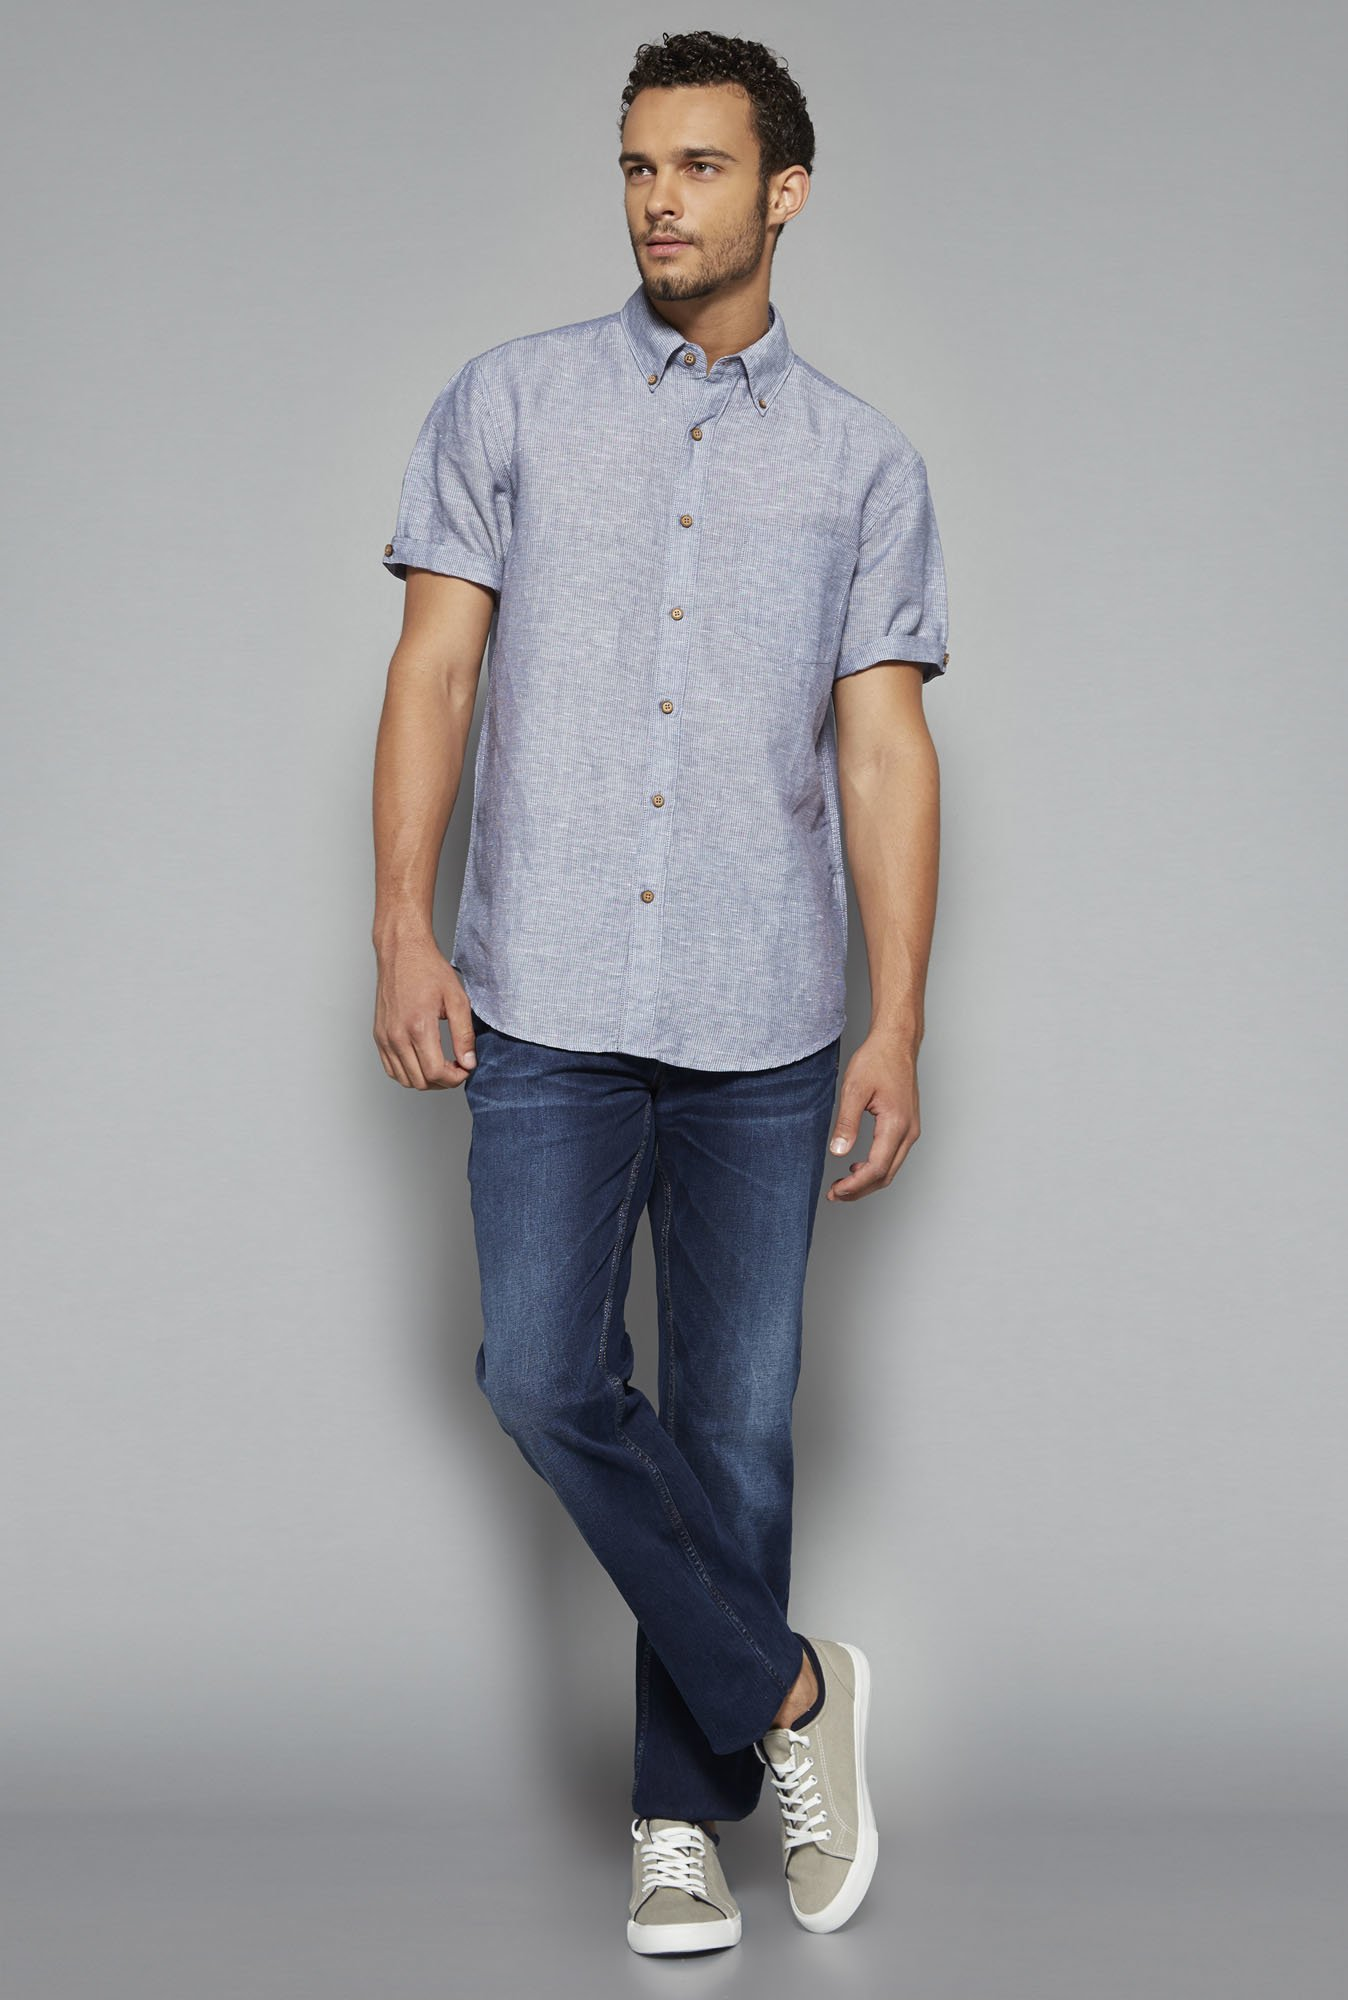 Westsport by Westside Blue Striped Shirt